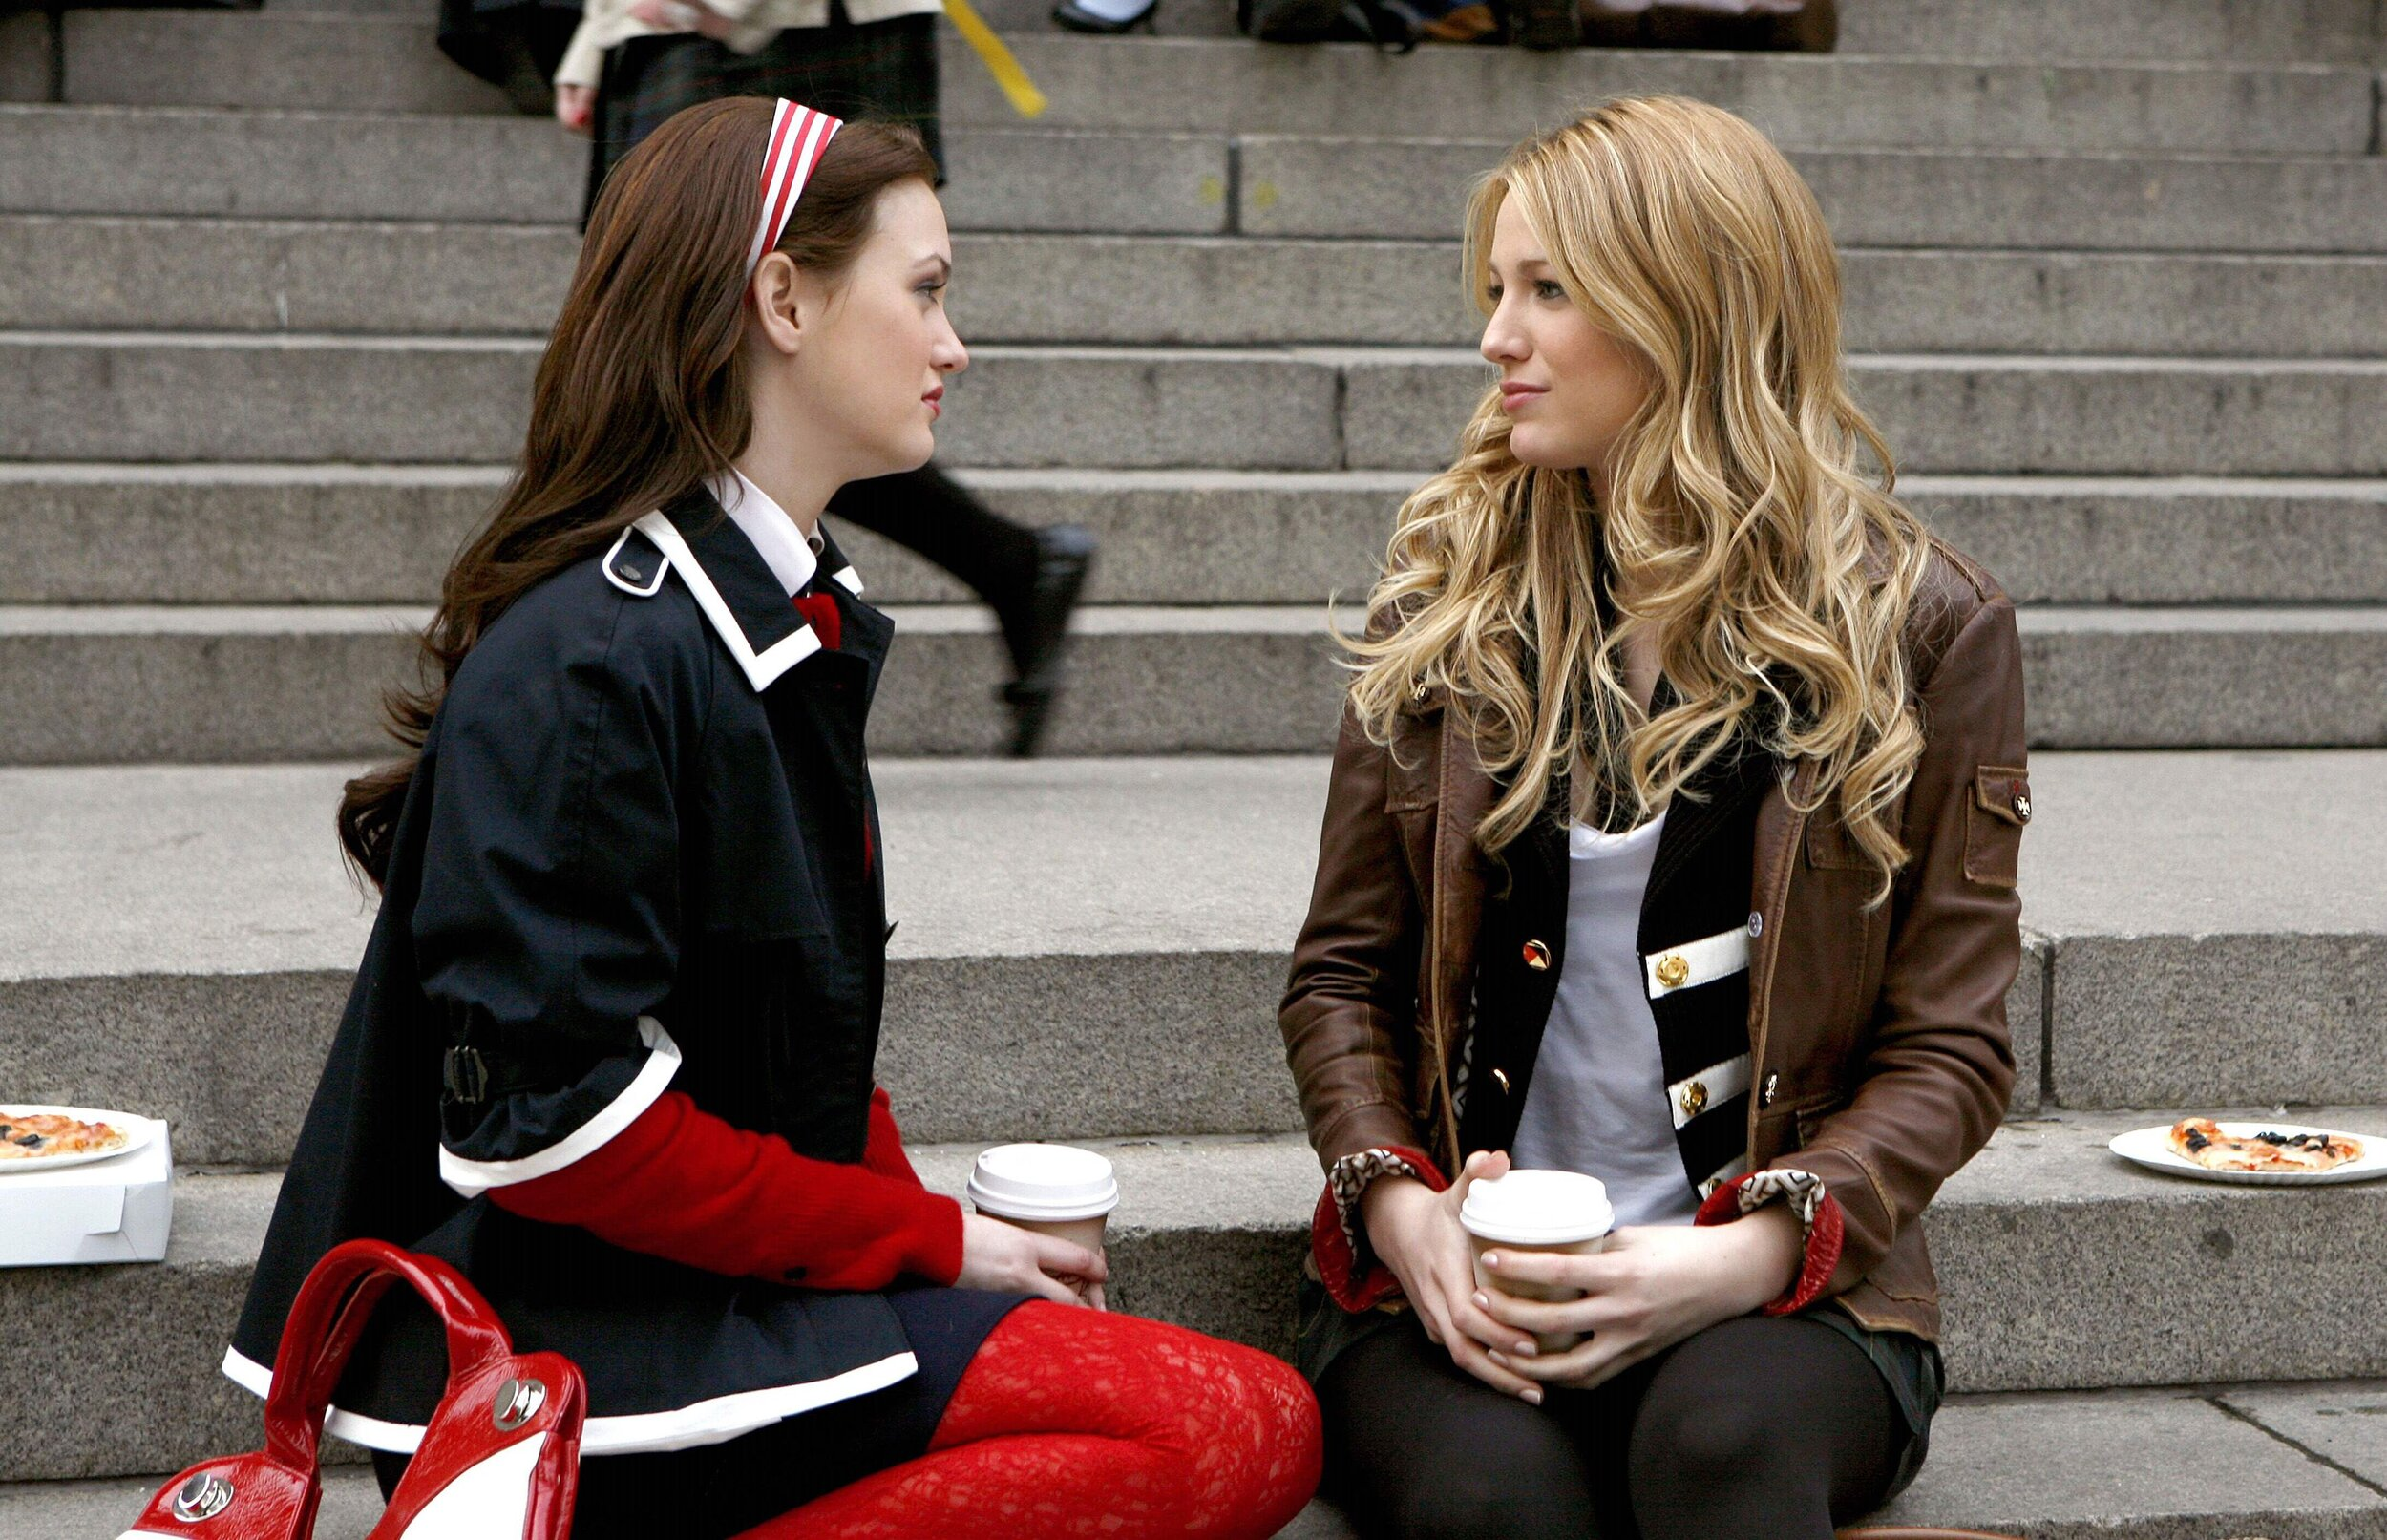 Gossip Girl Style Psychology - The Psychology of Fashion